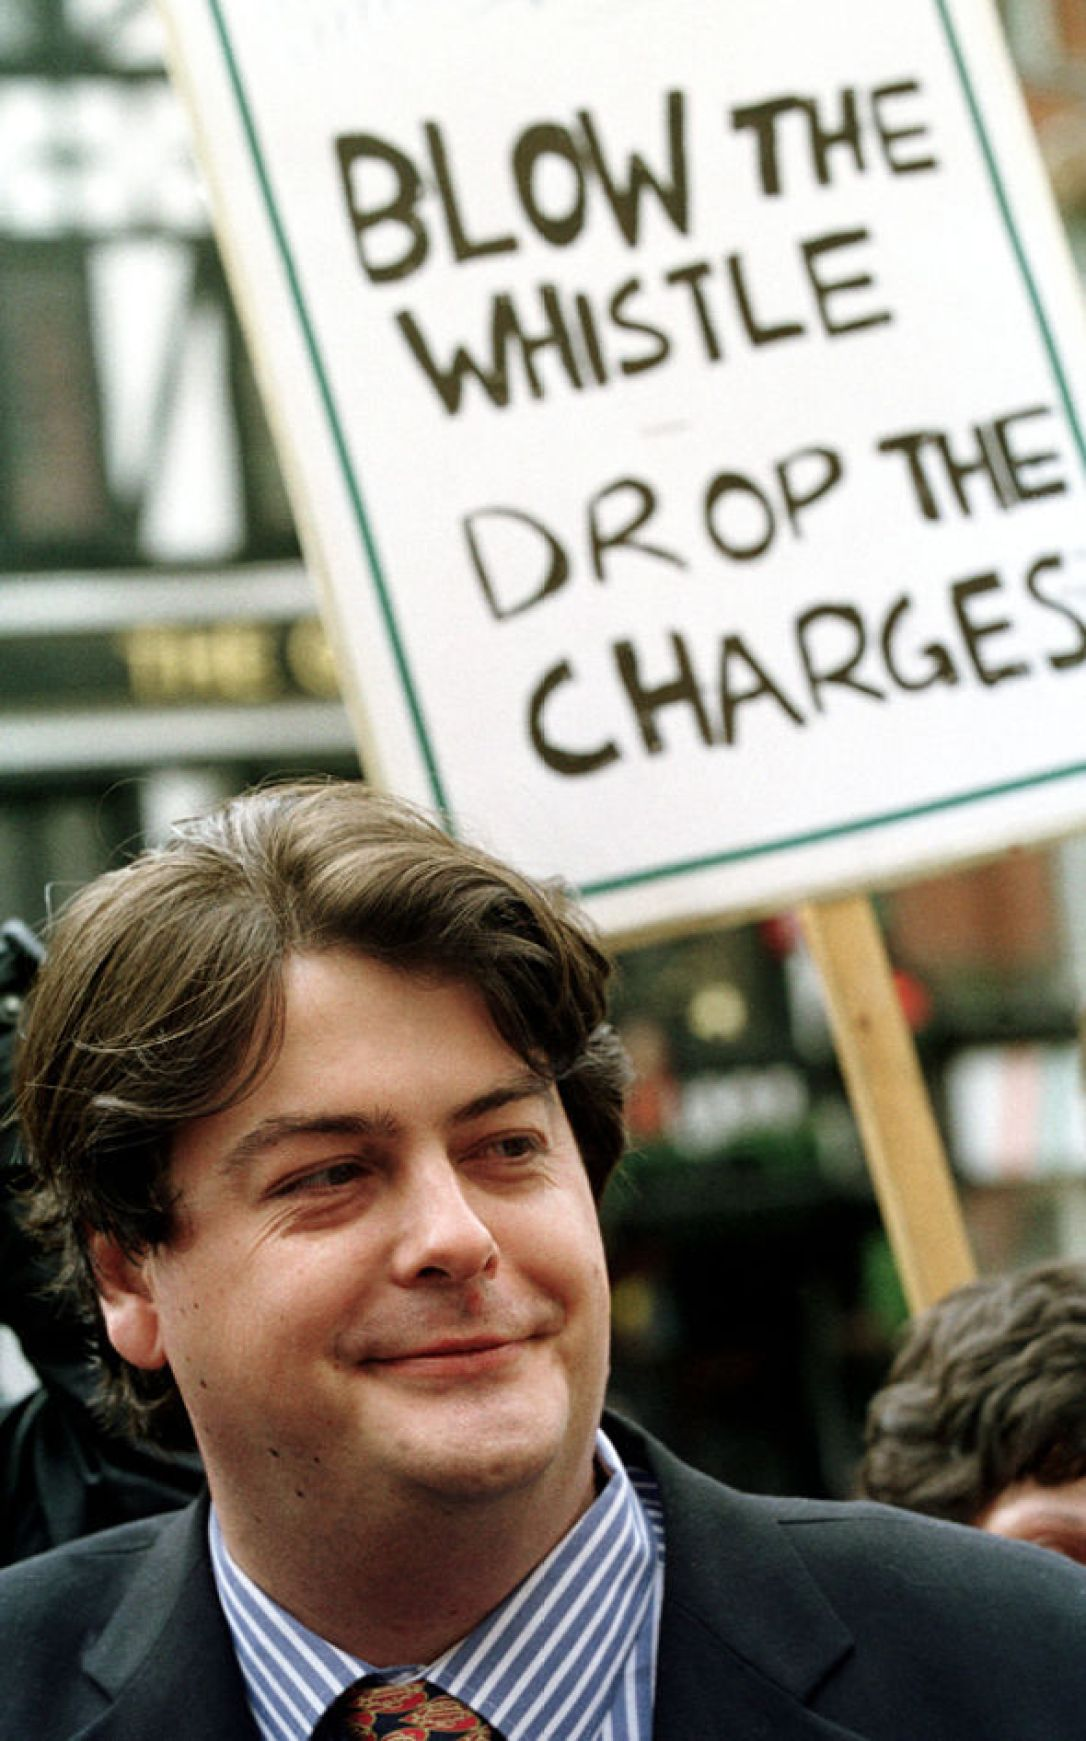 David Shayler in 2001 at the height of media storm surrounding his whistleblowing